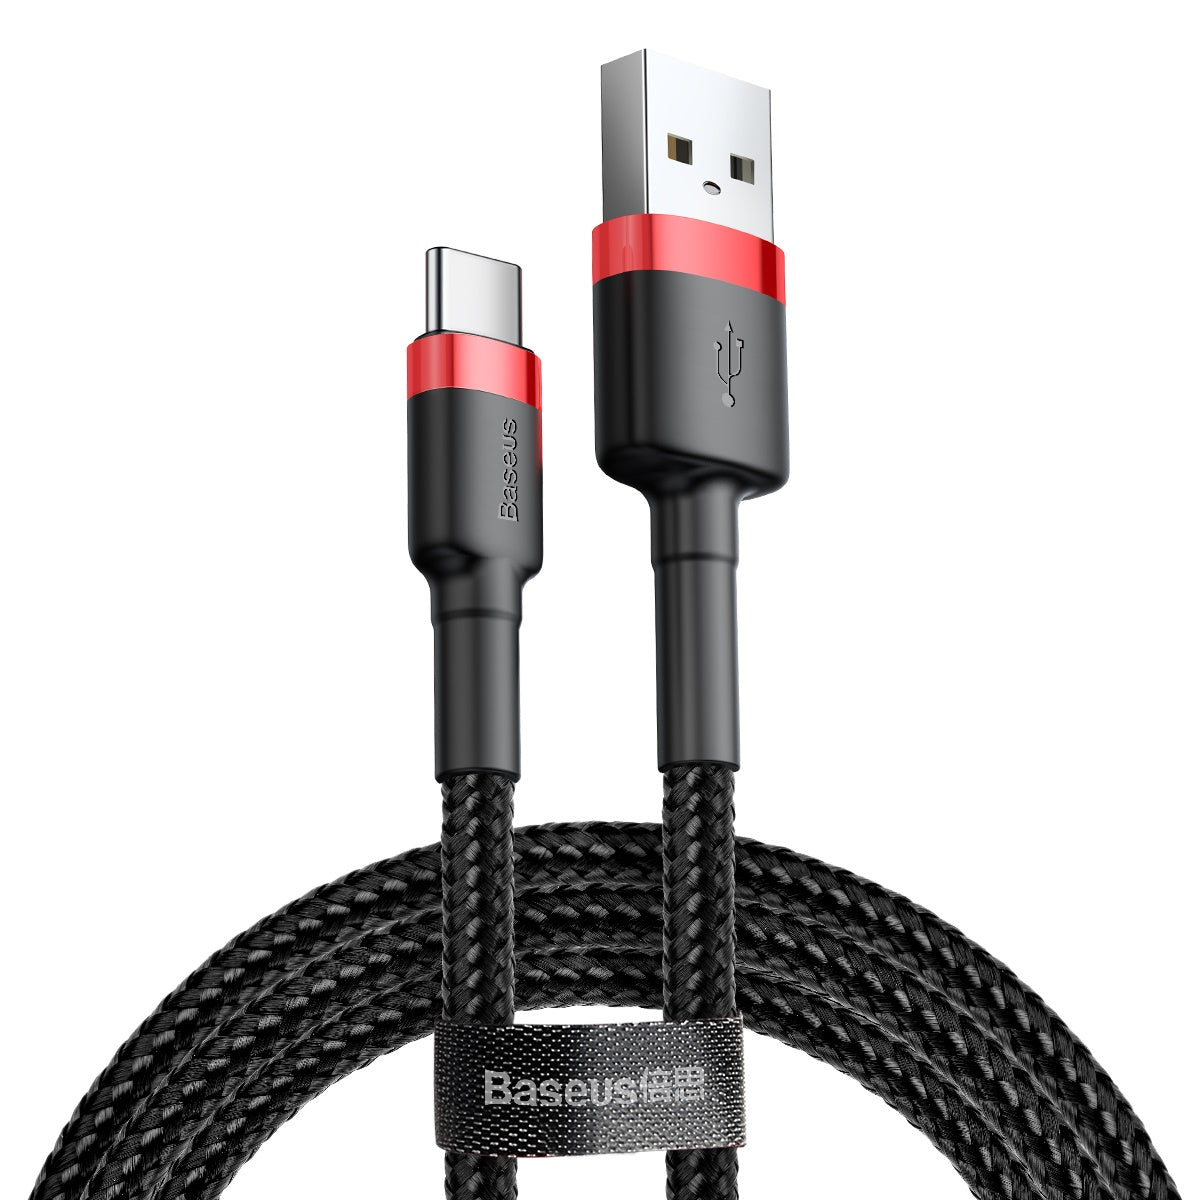 BASEUS Cafule USB to USB-C Cable (3 m)